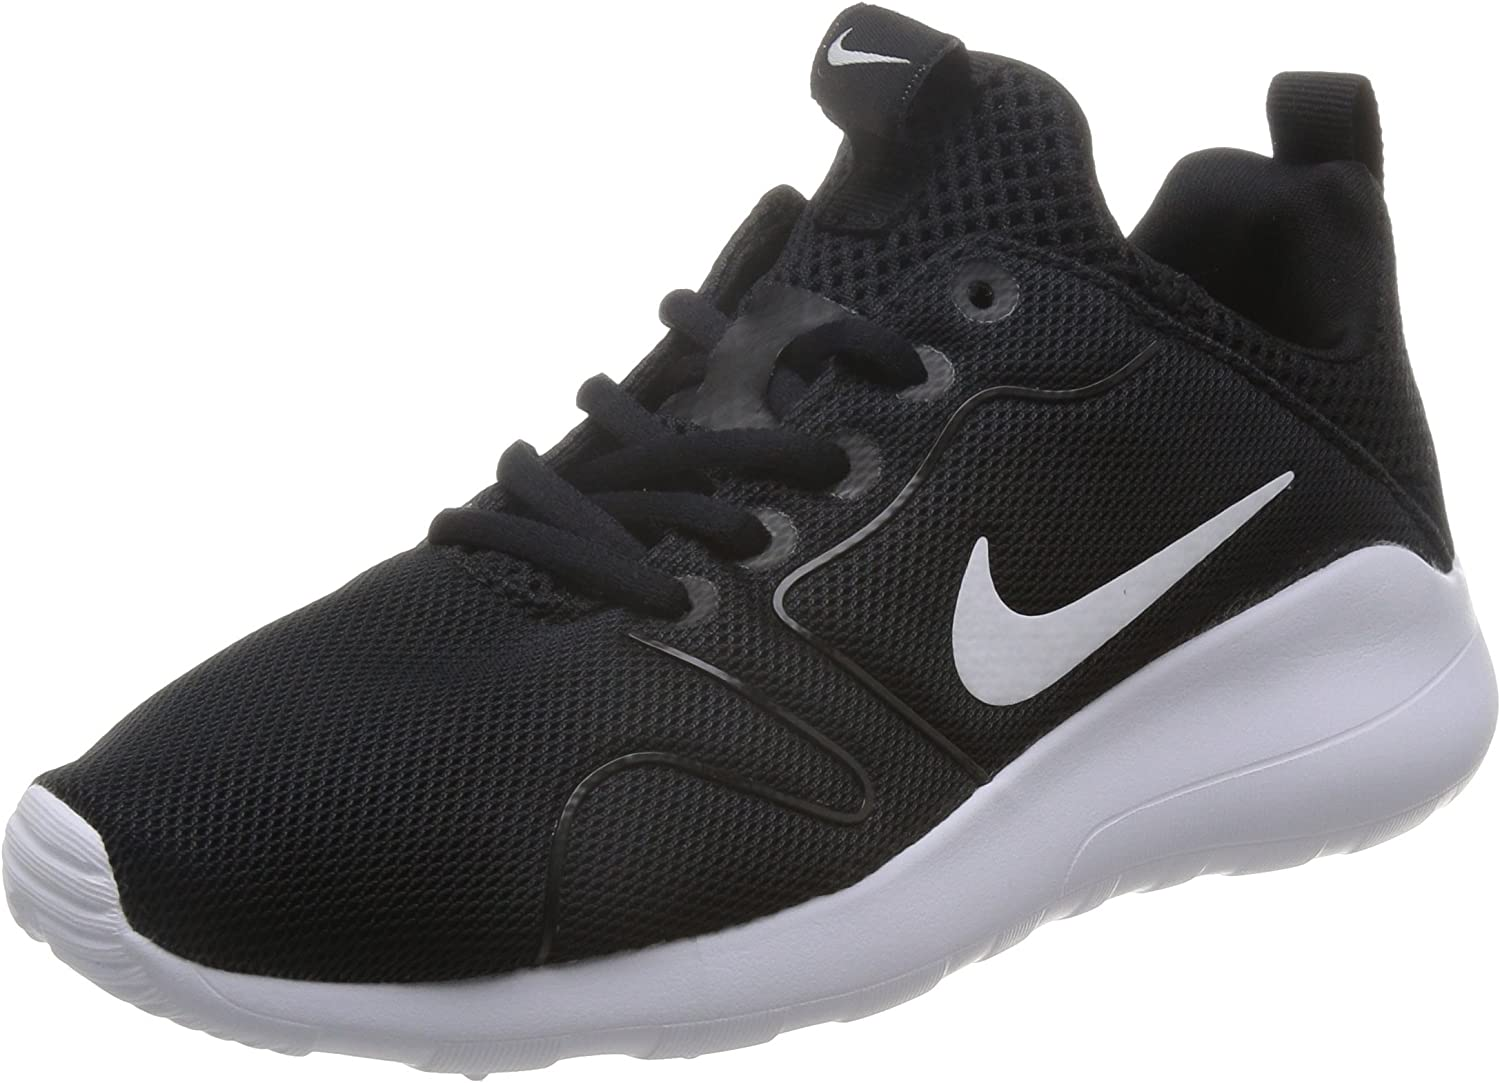 Nike Women's Kaishi 2.0 Running shoes